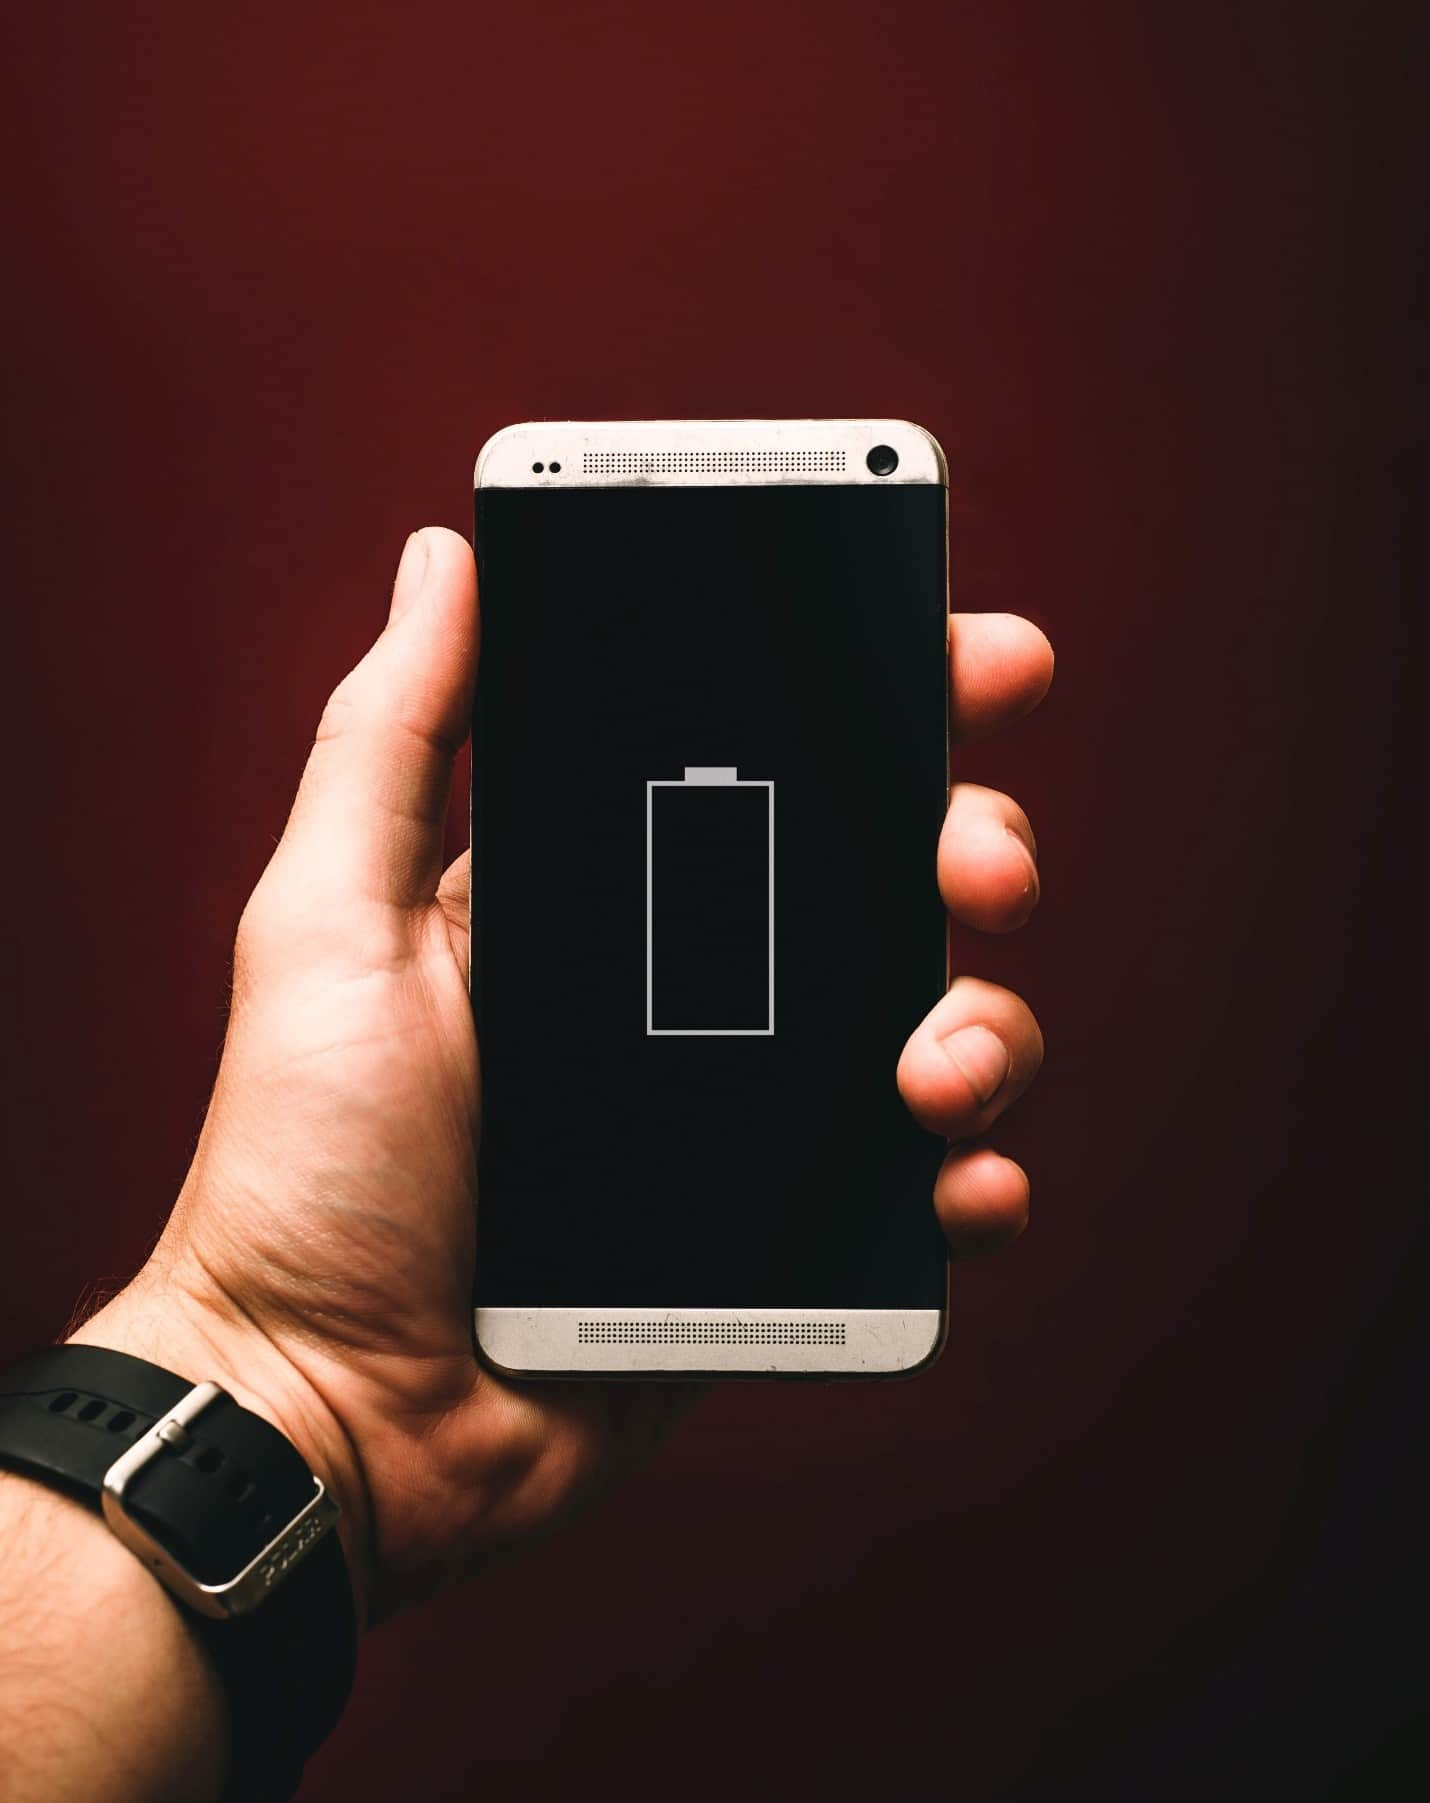 content/en-ae/images/repository/isc/2020/9910/prolong-your-smartphone-battery-lifespan-1.jpg